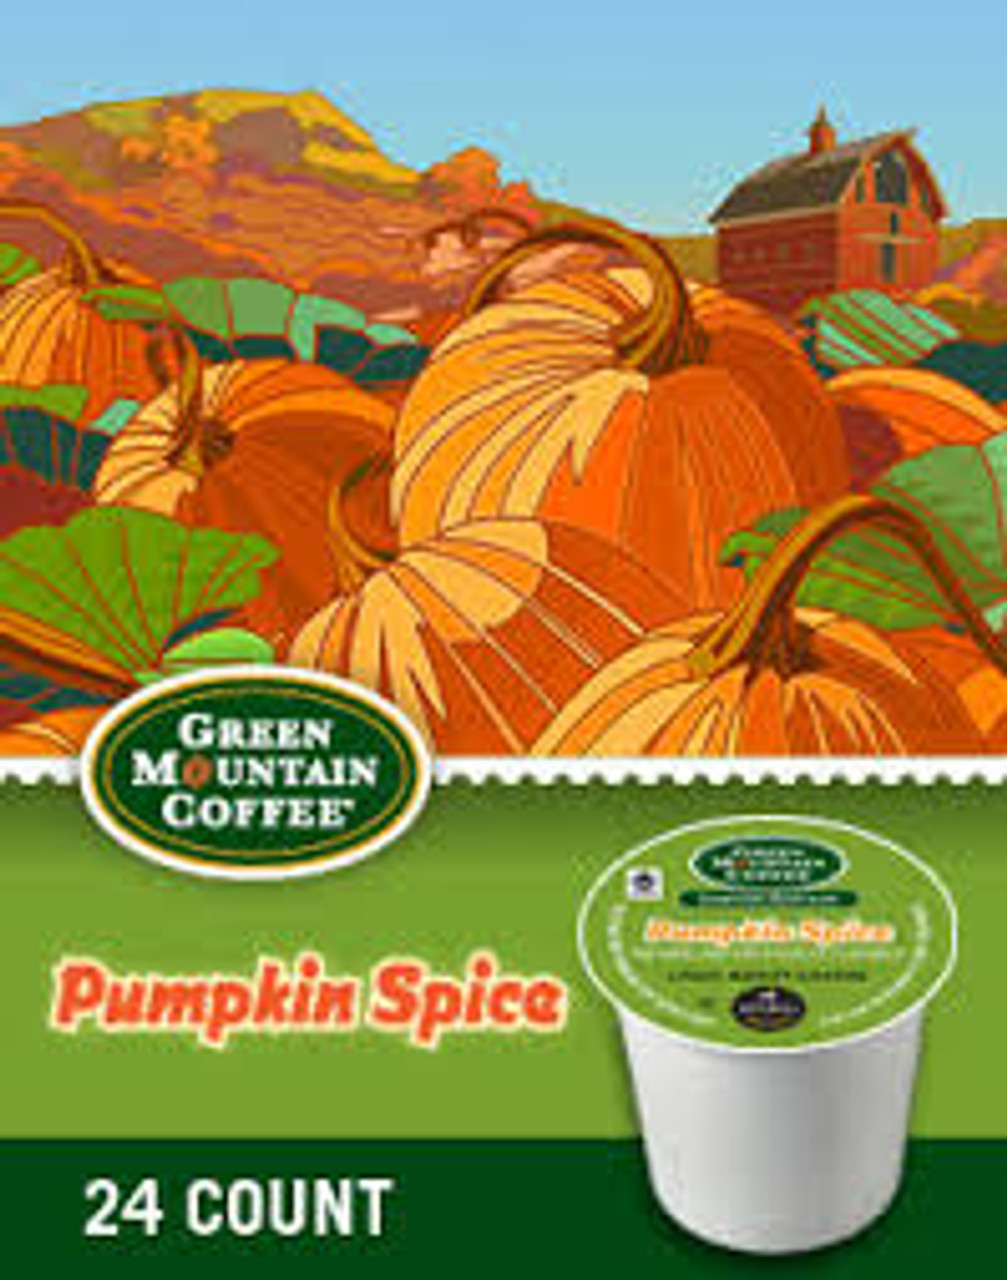 Enjoy Pumpkin Spice, a special, spicy autumn flavor, all made from your Keurig brewer and these gourmet single portion packs. Straight from the gourmet single portion pack to your home brewing system! The Pumpkin Spice blend, a creamy coffee tasting just as fall's best pumpkin dishes should, is made from 100% Arabica coffee beans and is Fair Trade Certified Organic.